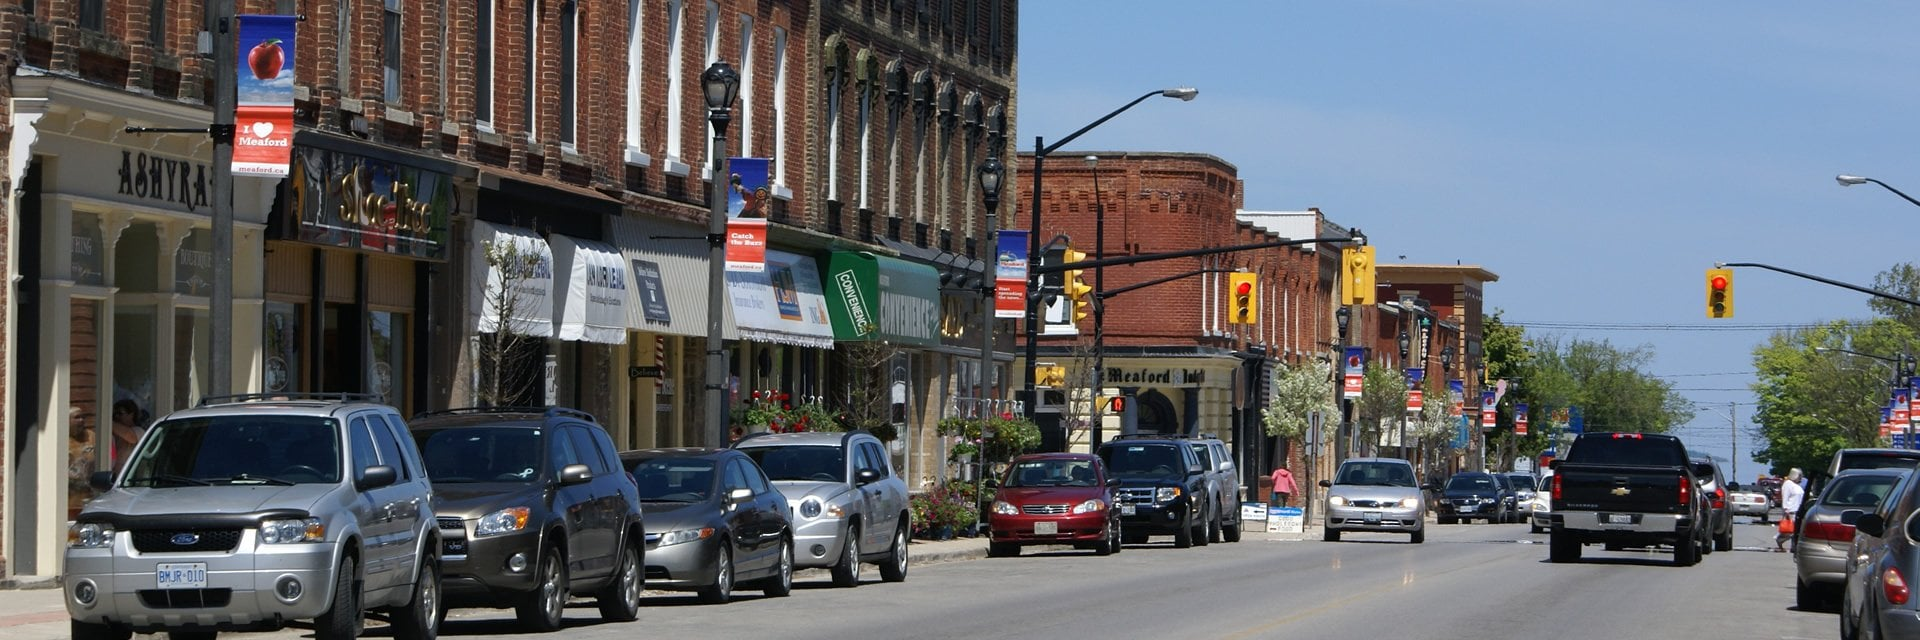 meaford ontario real estate  u0026 community guide